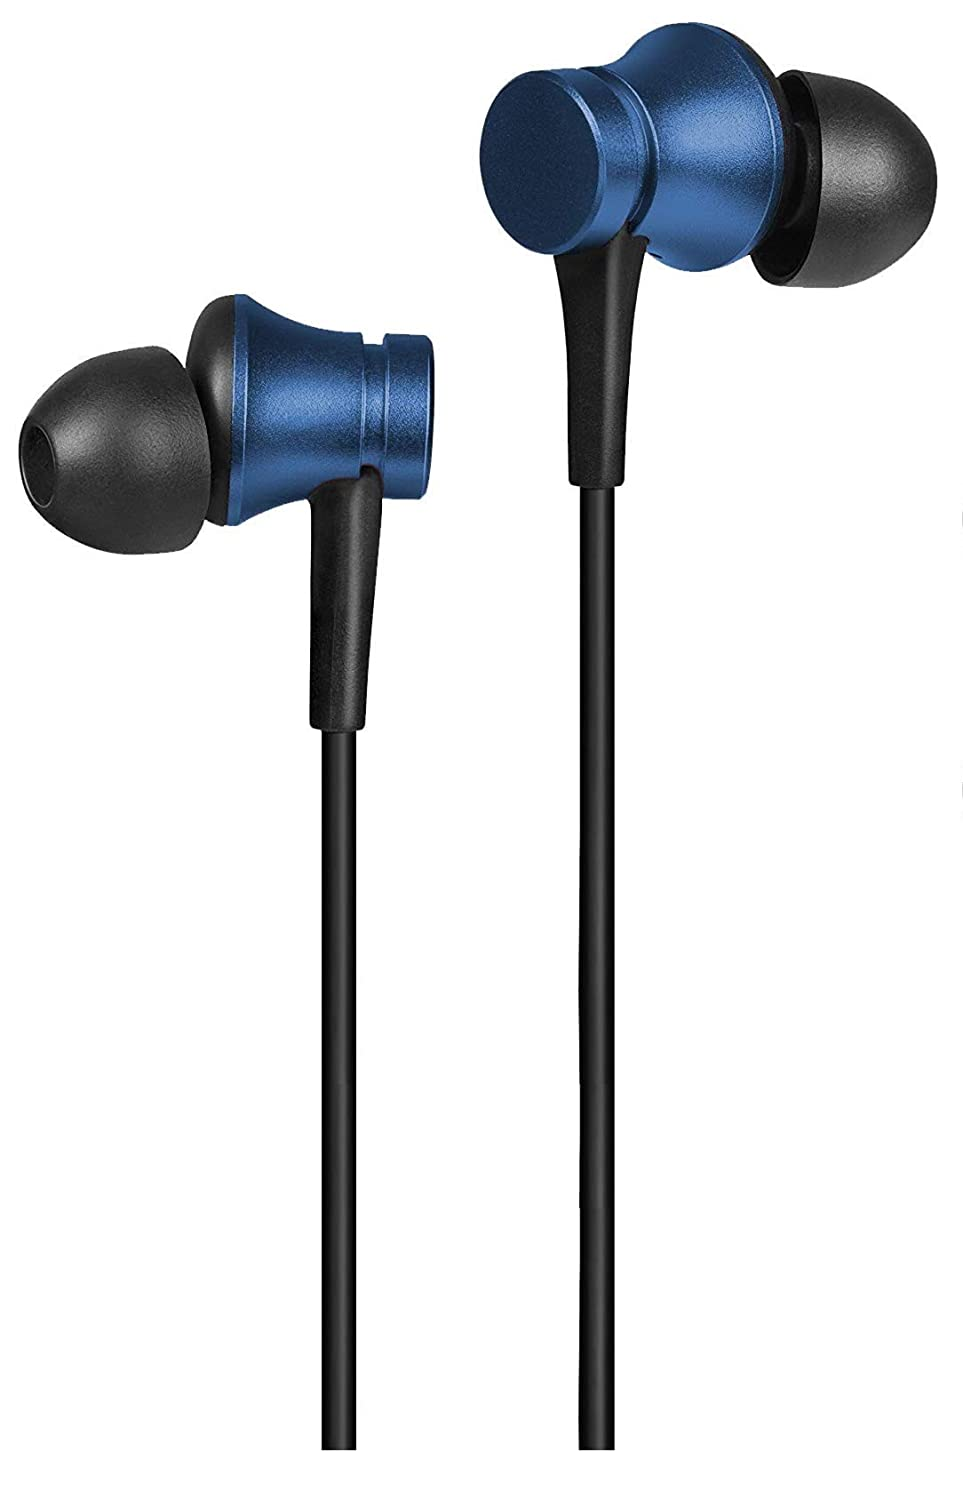 Best Earphones Under 500 in india 2021